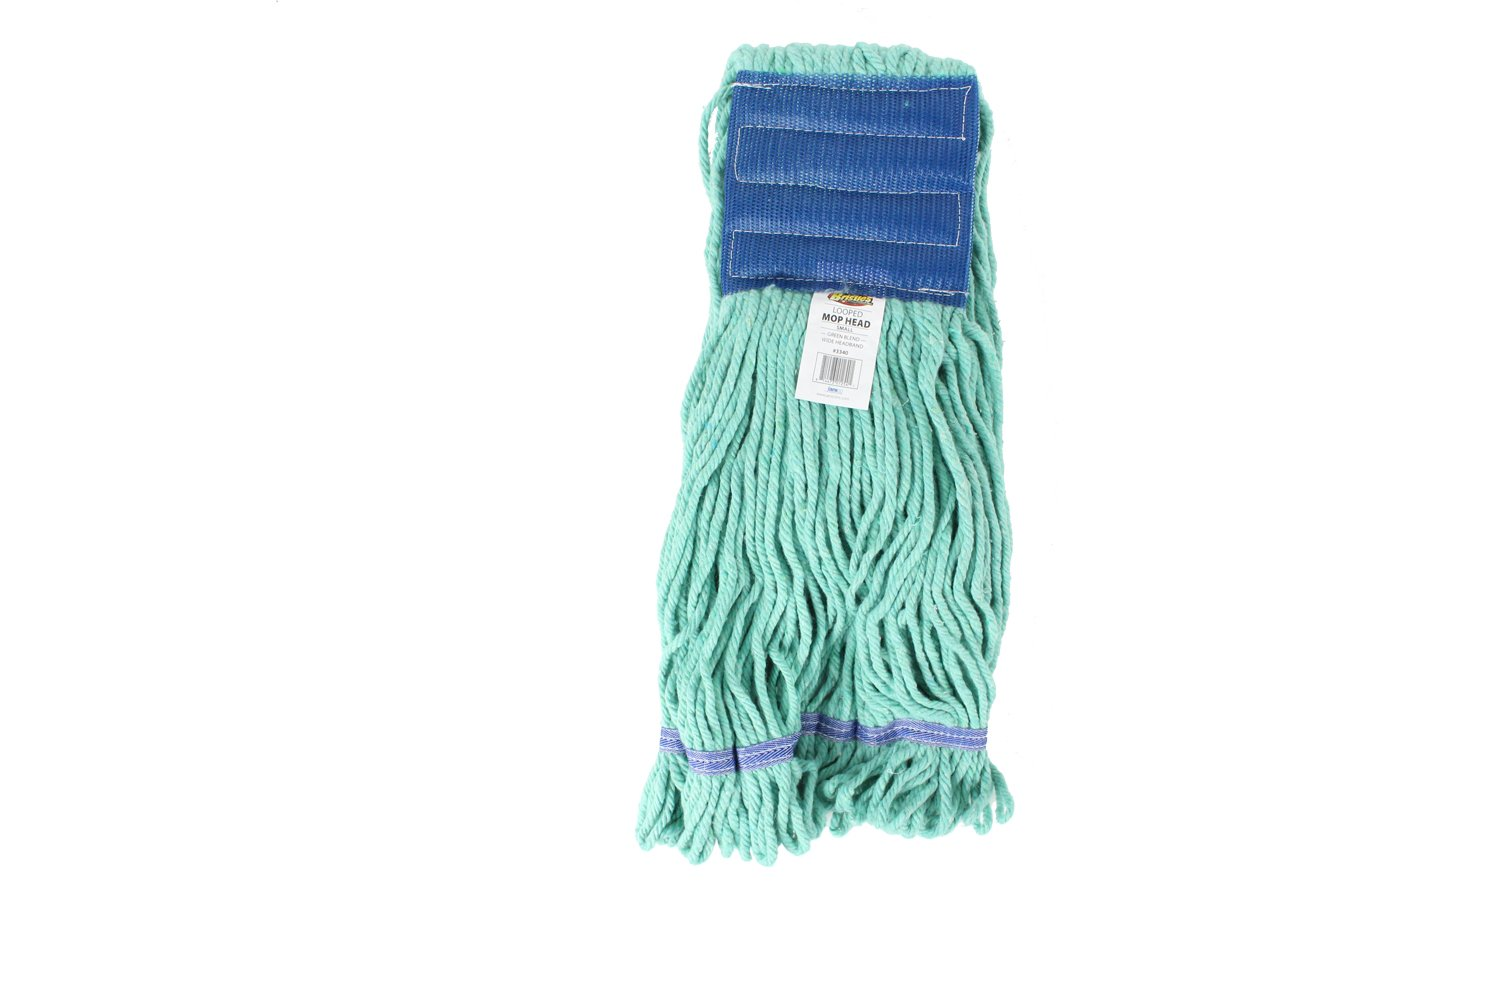 Bristles Wet Mop Head Loop End Replacement, 5 Inch Wide Headband, 4 Ply Cotton Synthetic Yarn, Pack of 12 (Medium, Green)